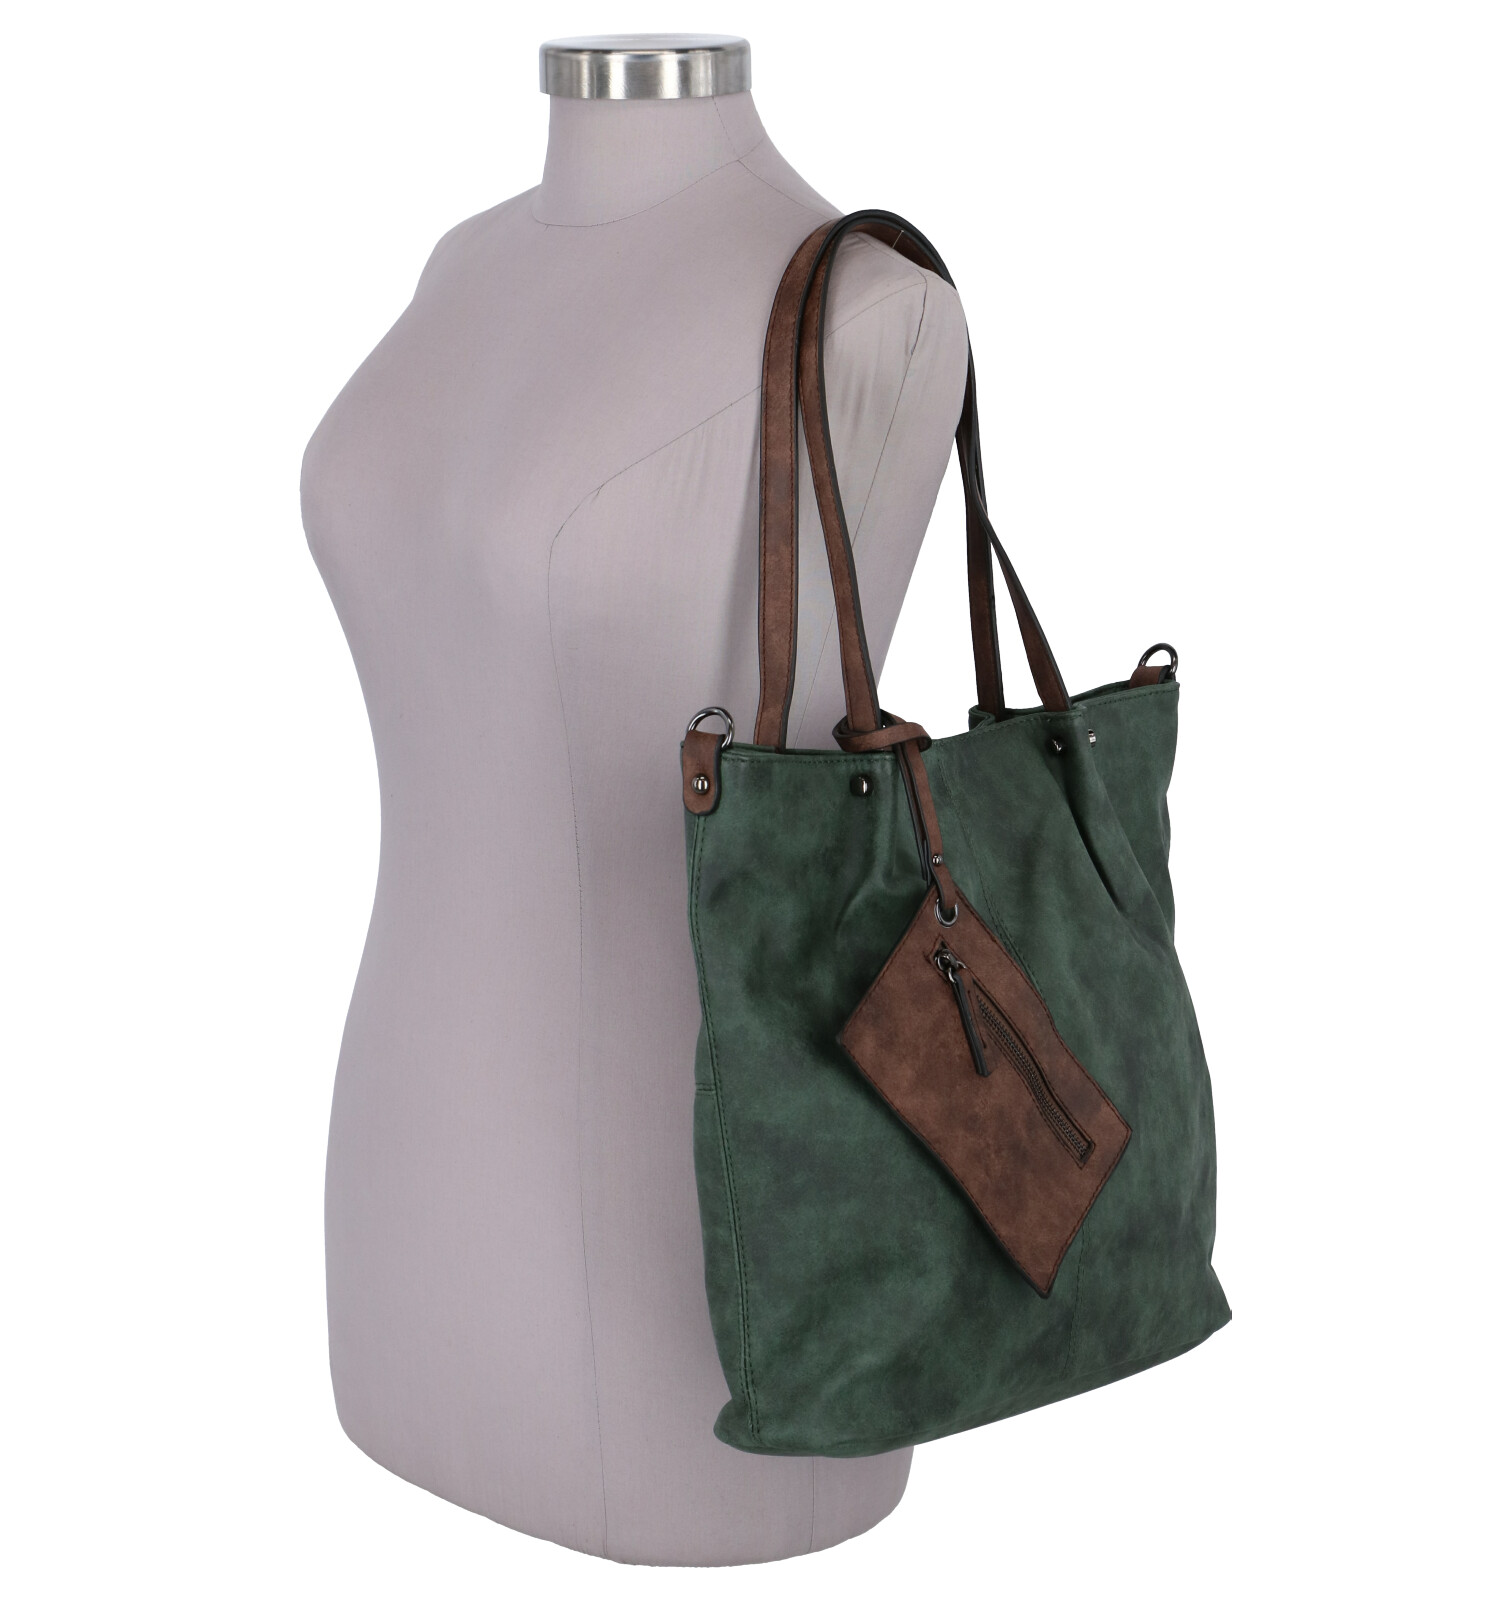 In Donkergroene Emilyamp; Tas Bag Shopper Noah lc15FJKuT3